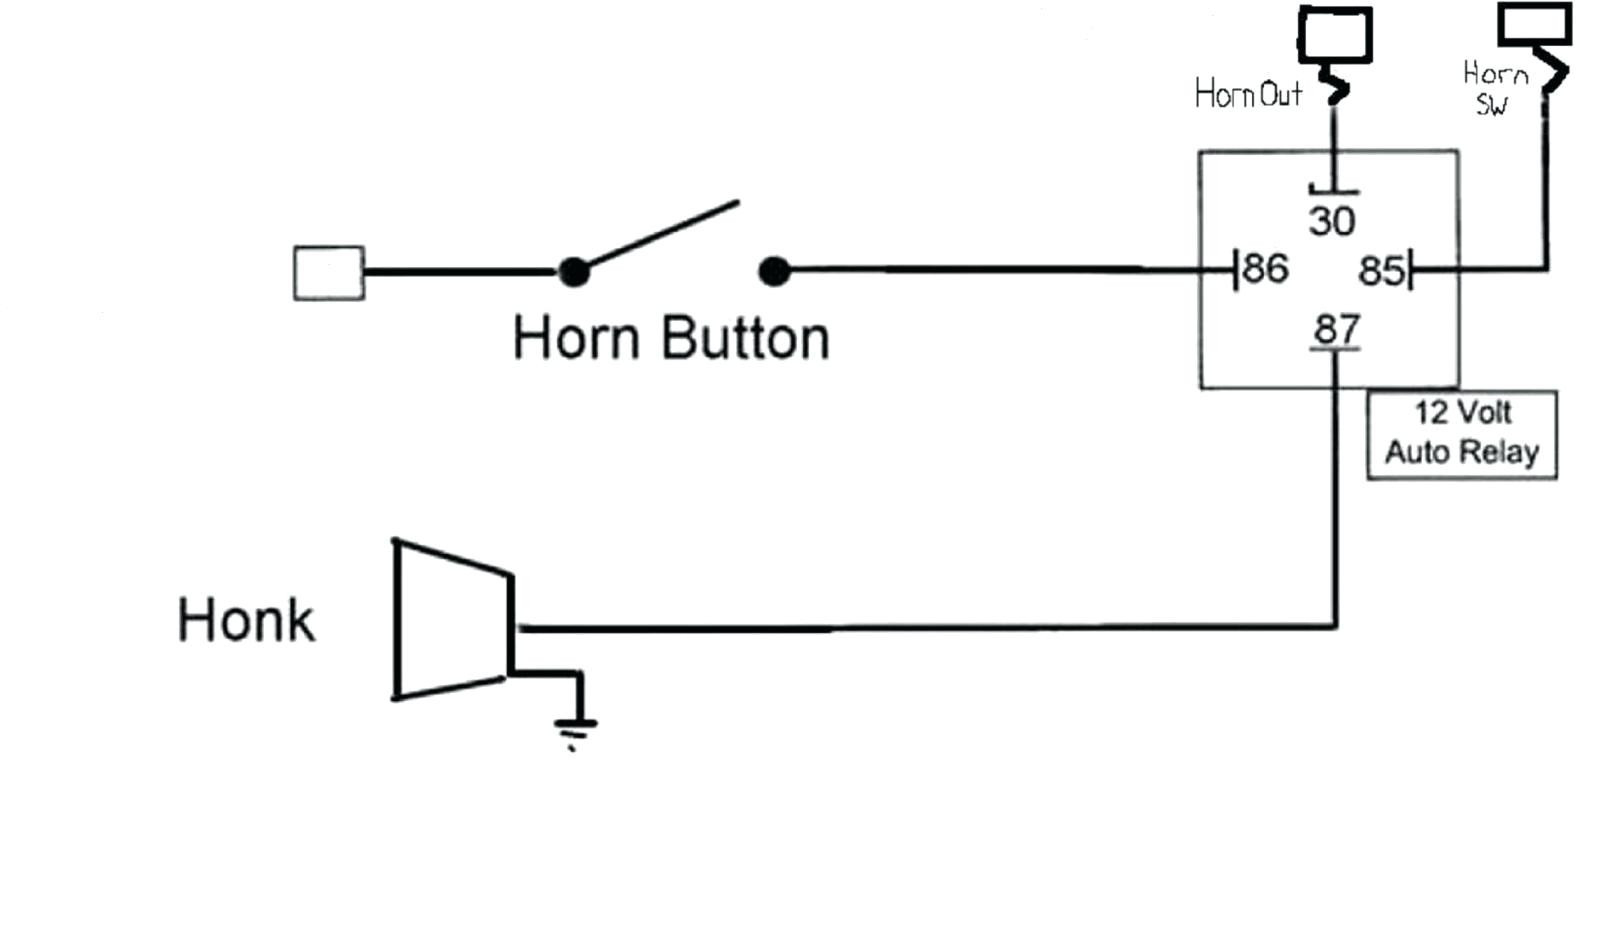 Horn Switch Wiring - Schema Wiring Diagram - Horn Wiring Diagram